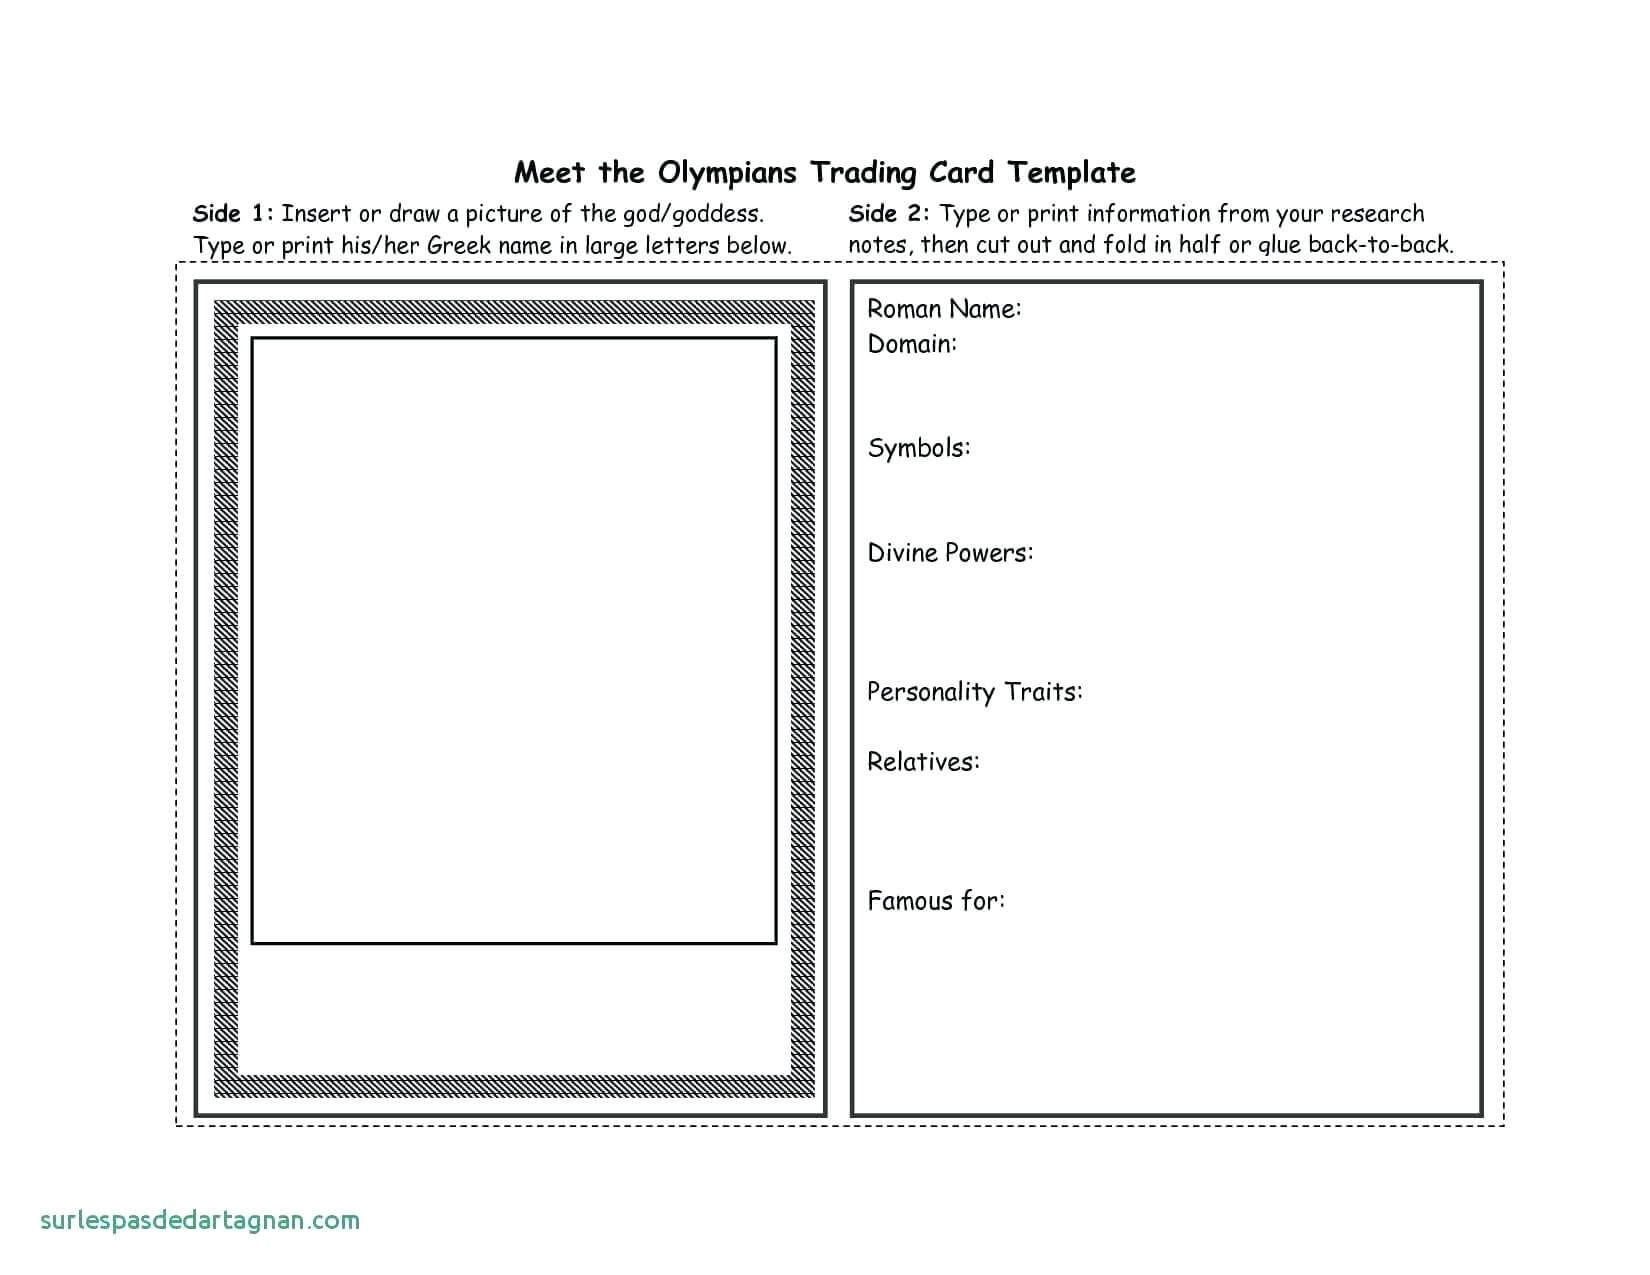 004 Template Ideas Baseball Card Verypage Co Intended For Pertaining To Trading Cards Templates Free Download